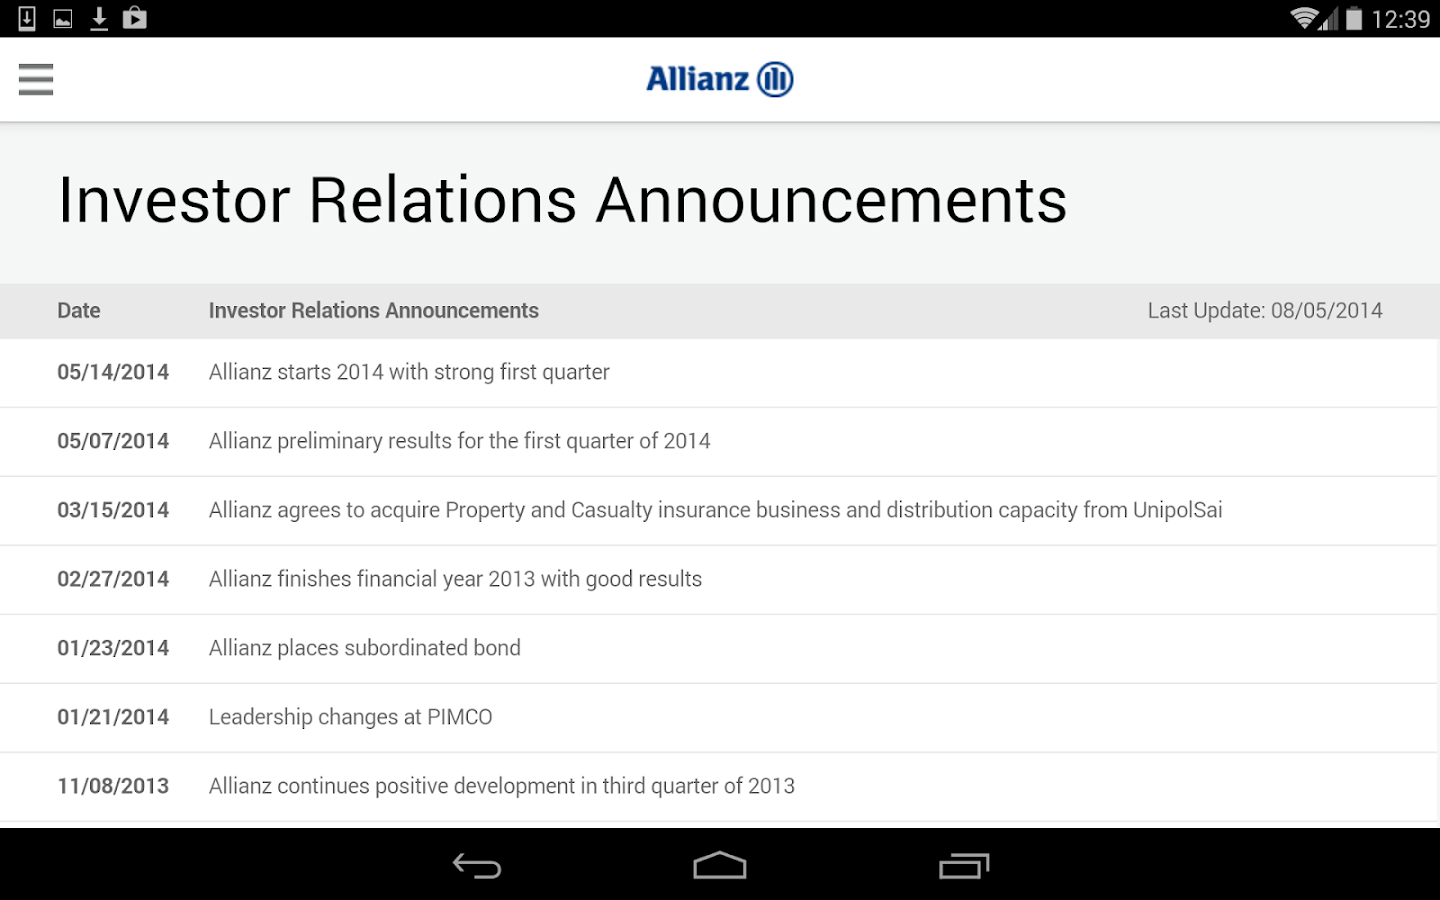 Allianz Investor Relations Android Apps on Google Play